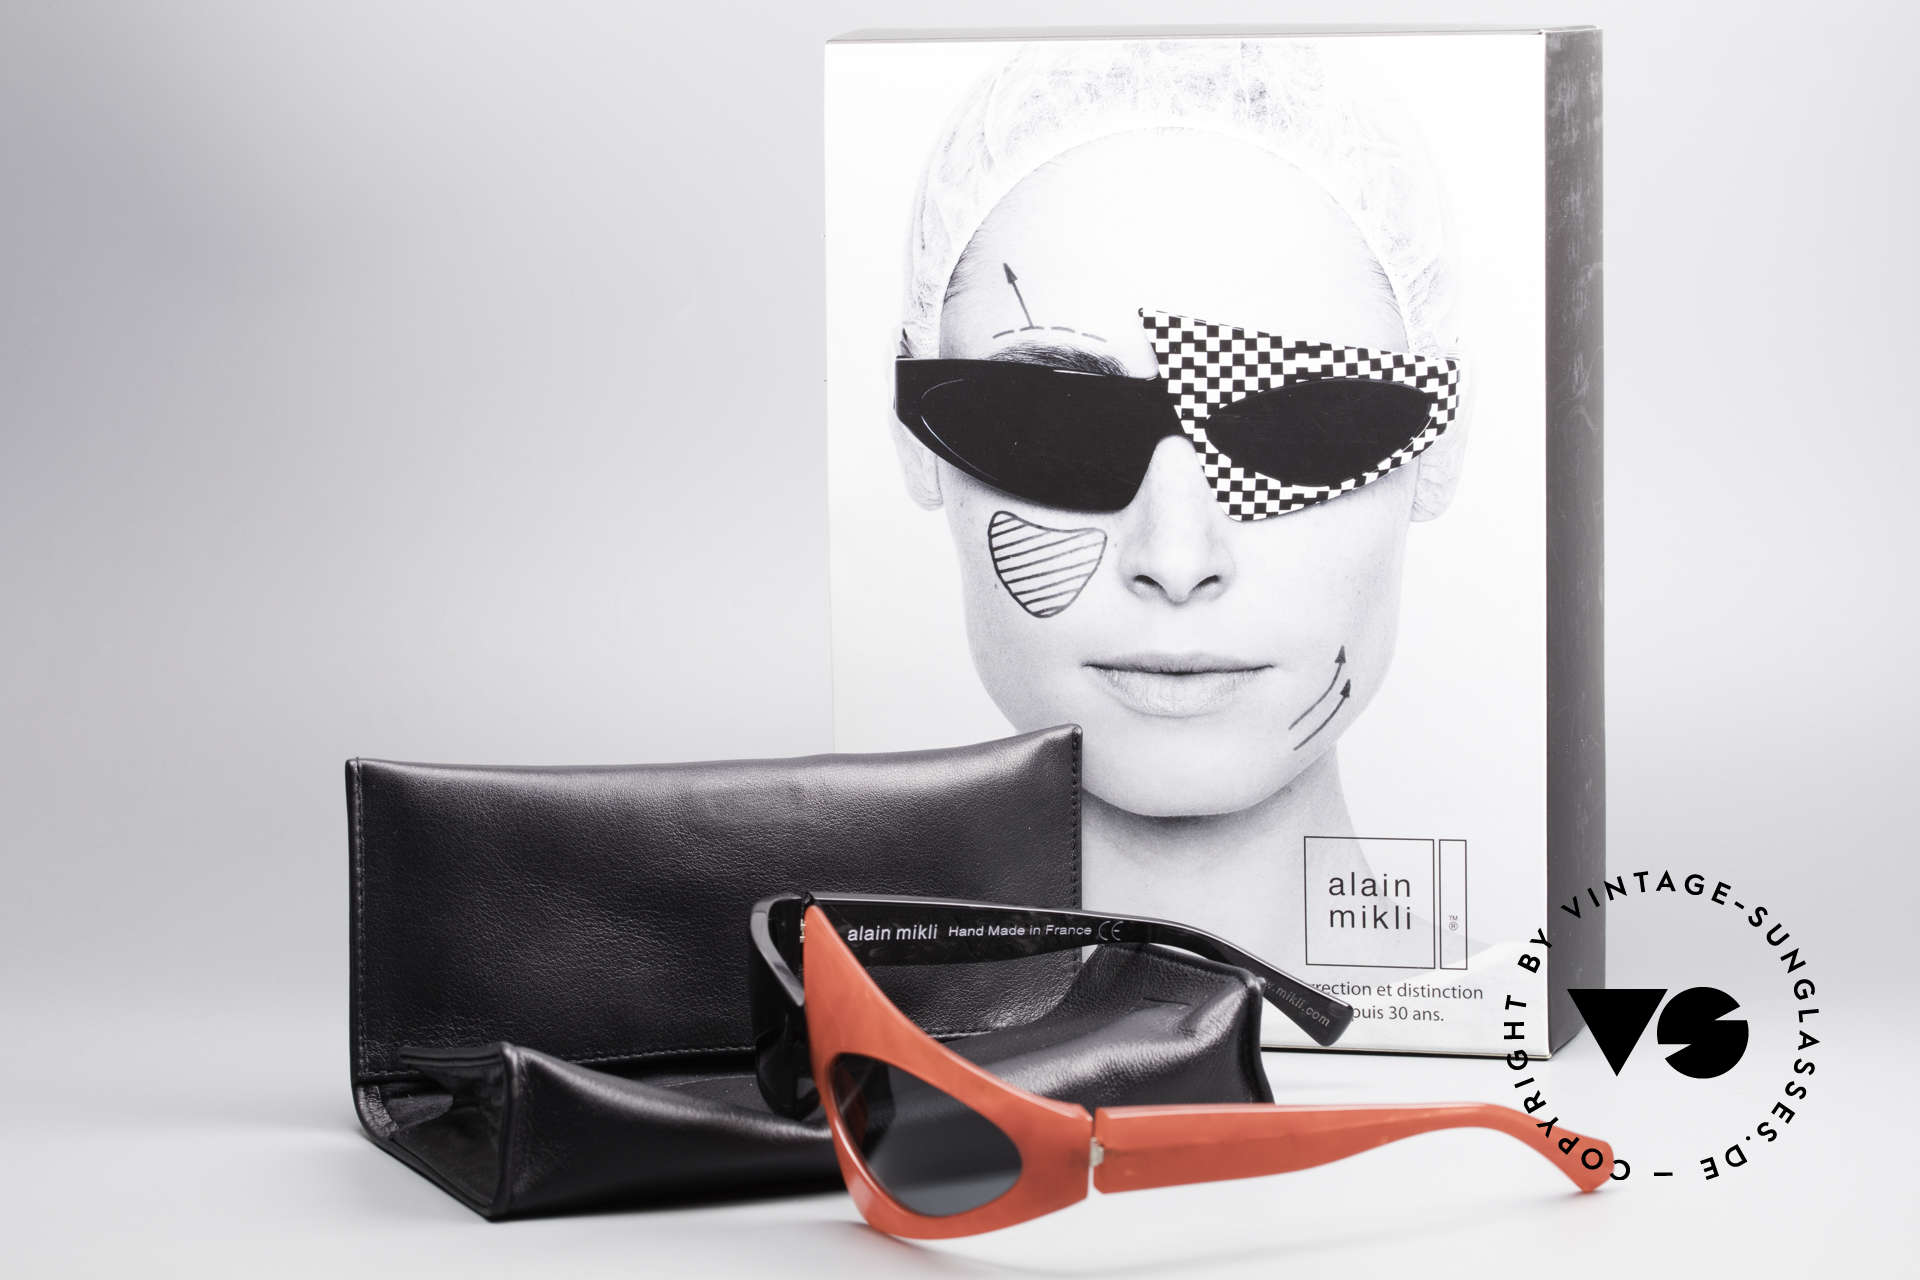 Alain Mikli 0005 Limited Special Edition 30 Years, Size: large, Made for Women